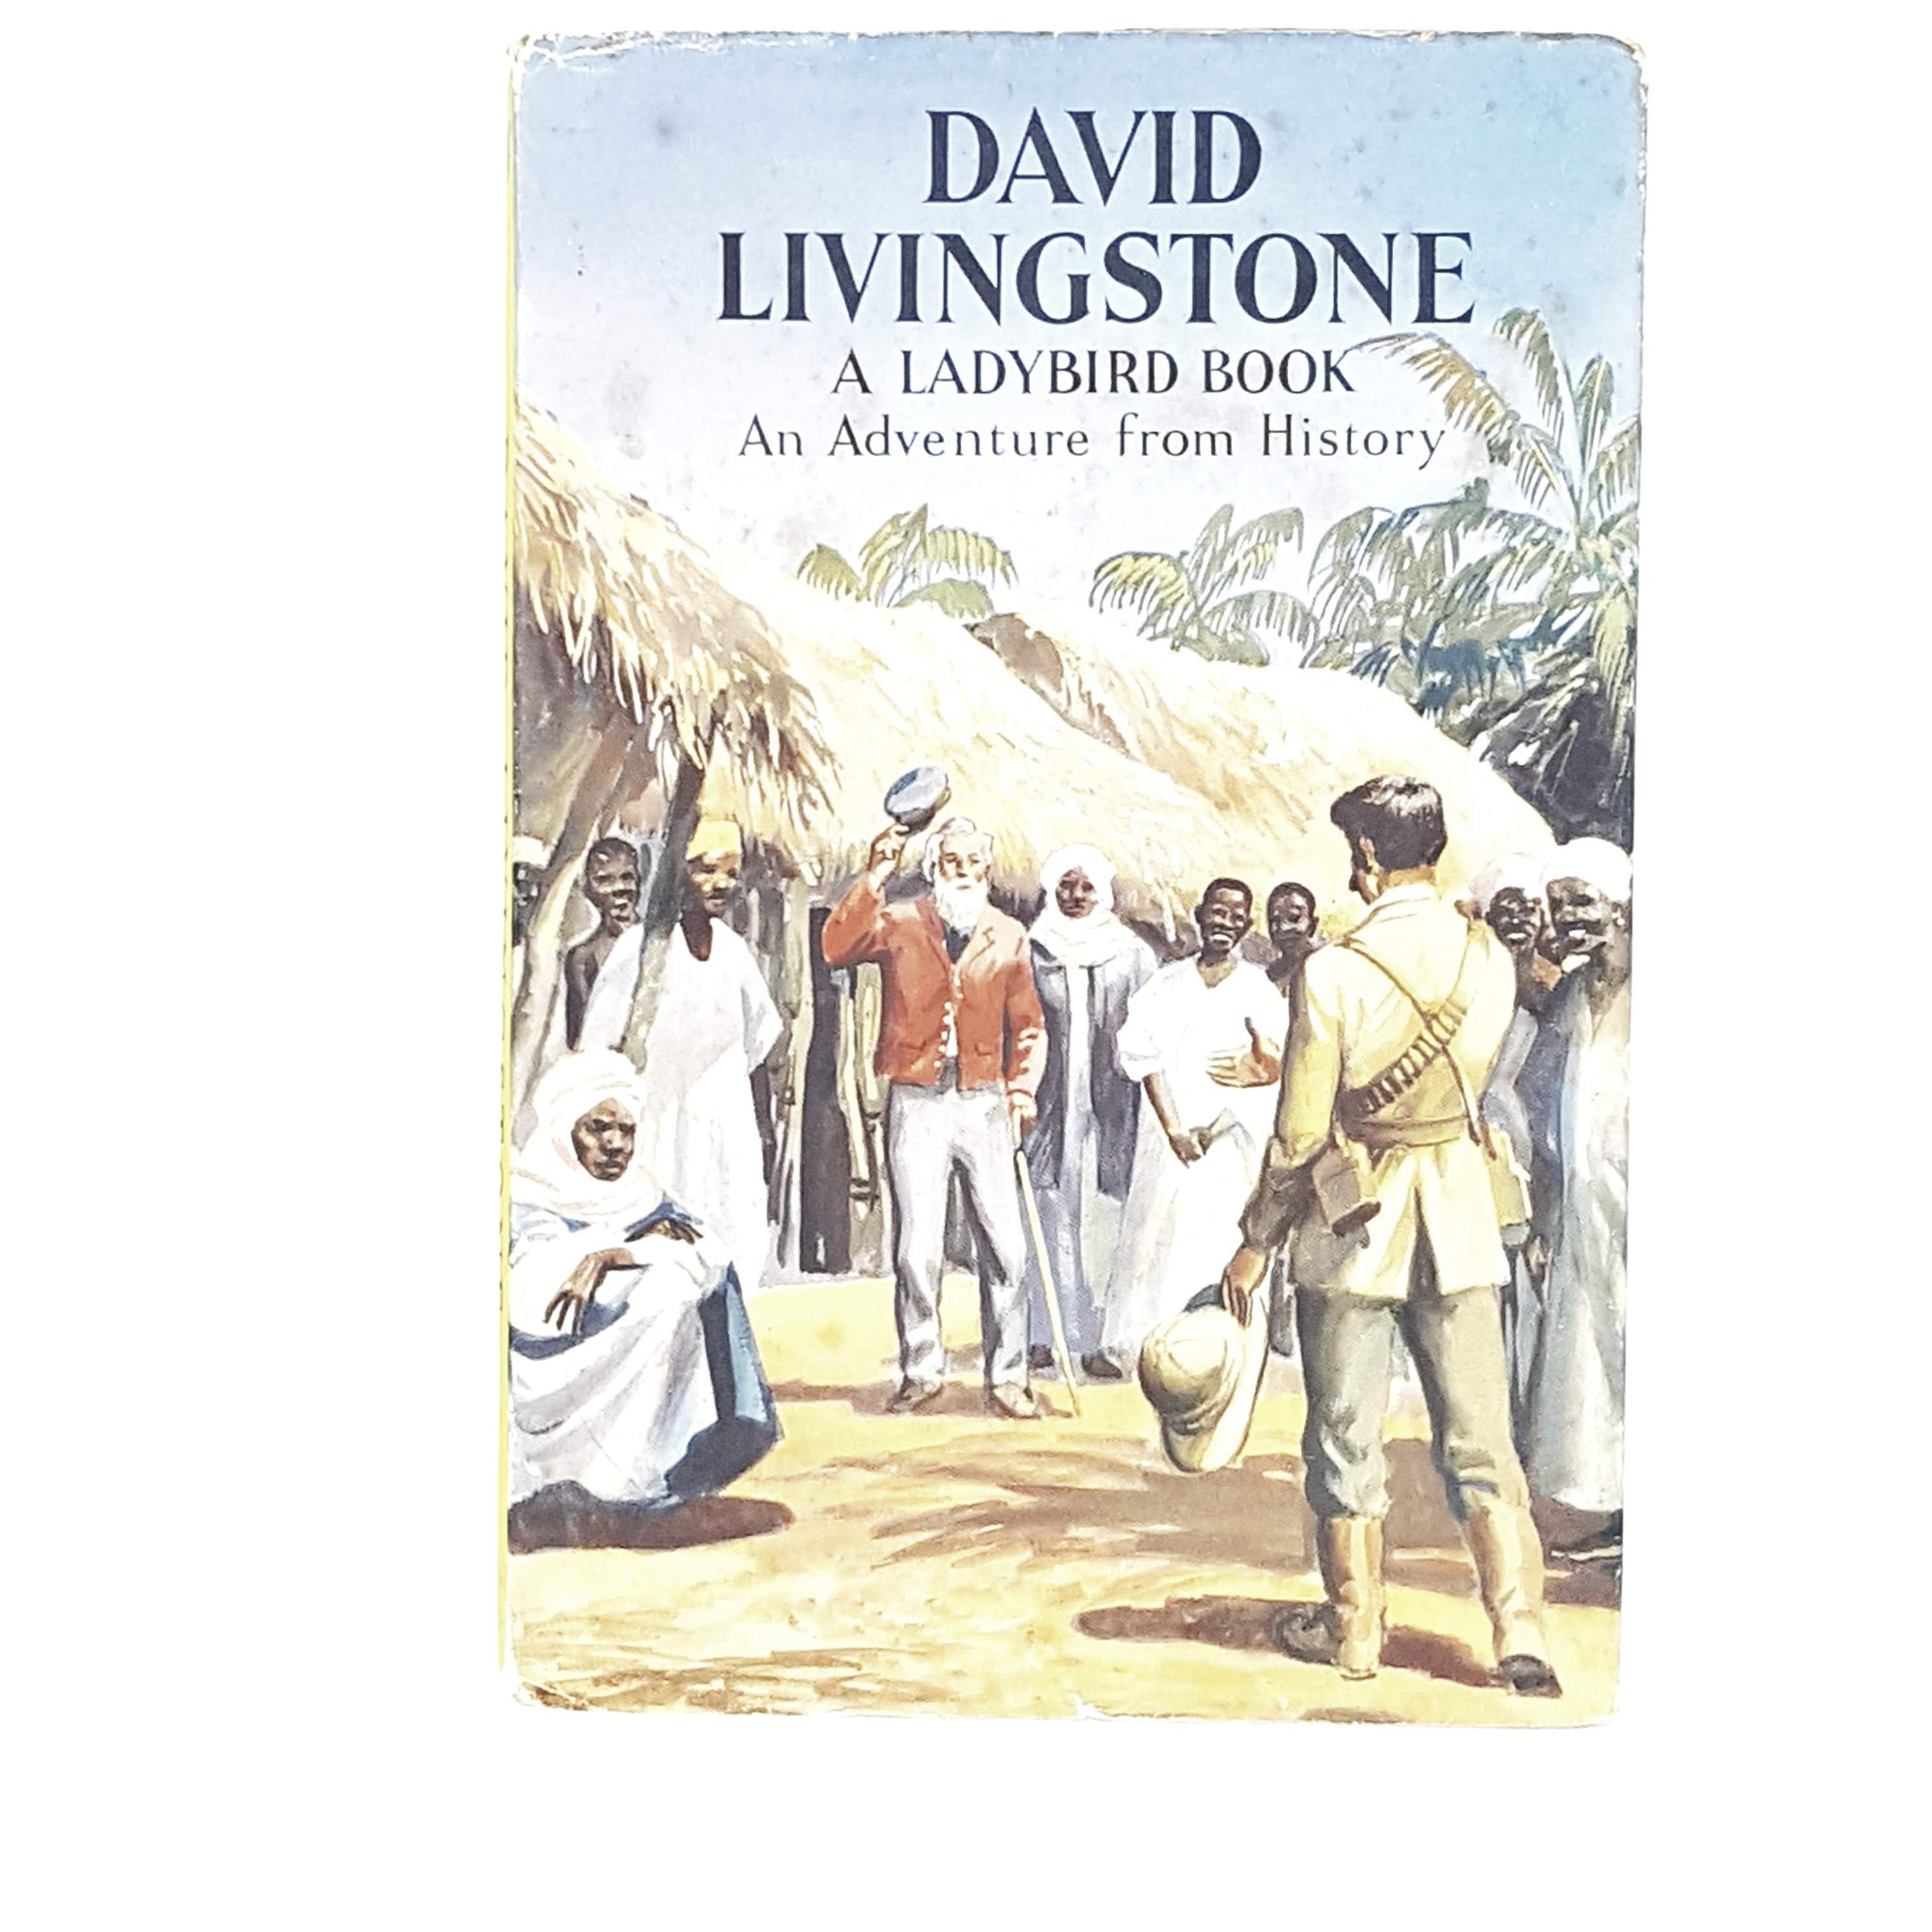 ladybird-history-david-livingstone-1960-vintage-online-bookstore-country-house-library